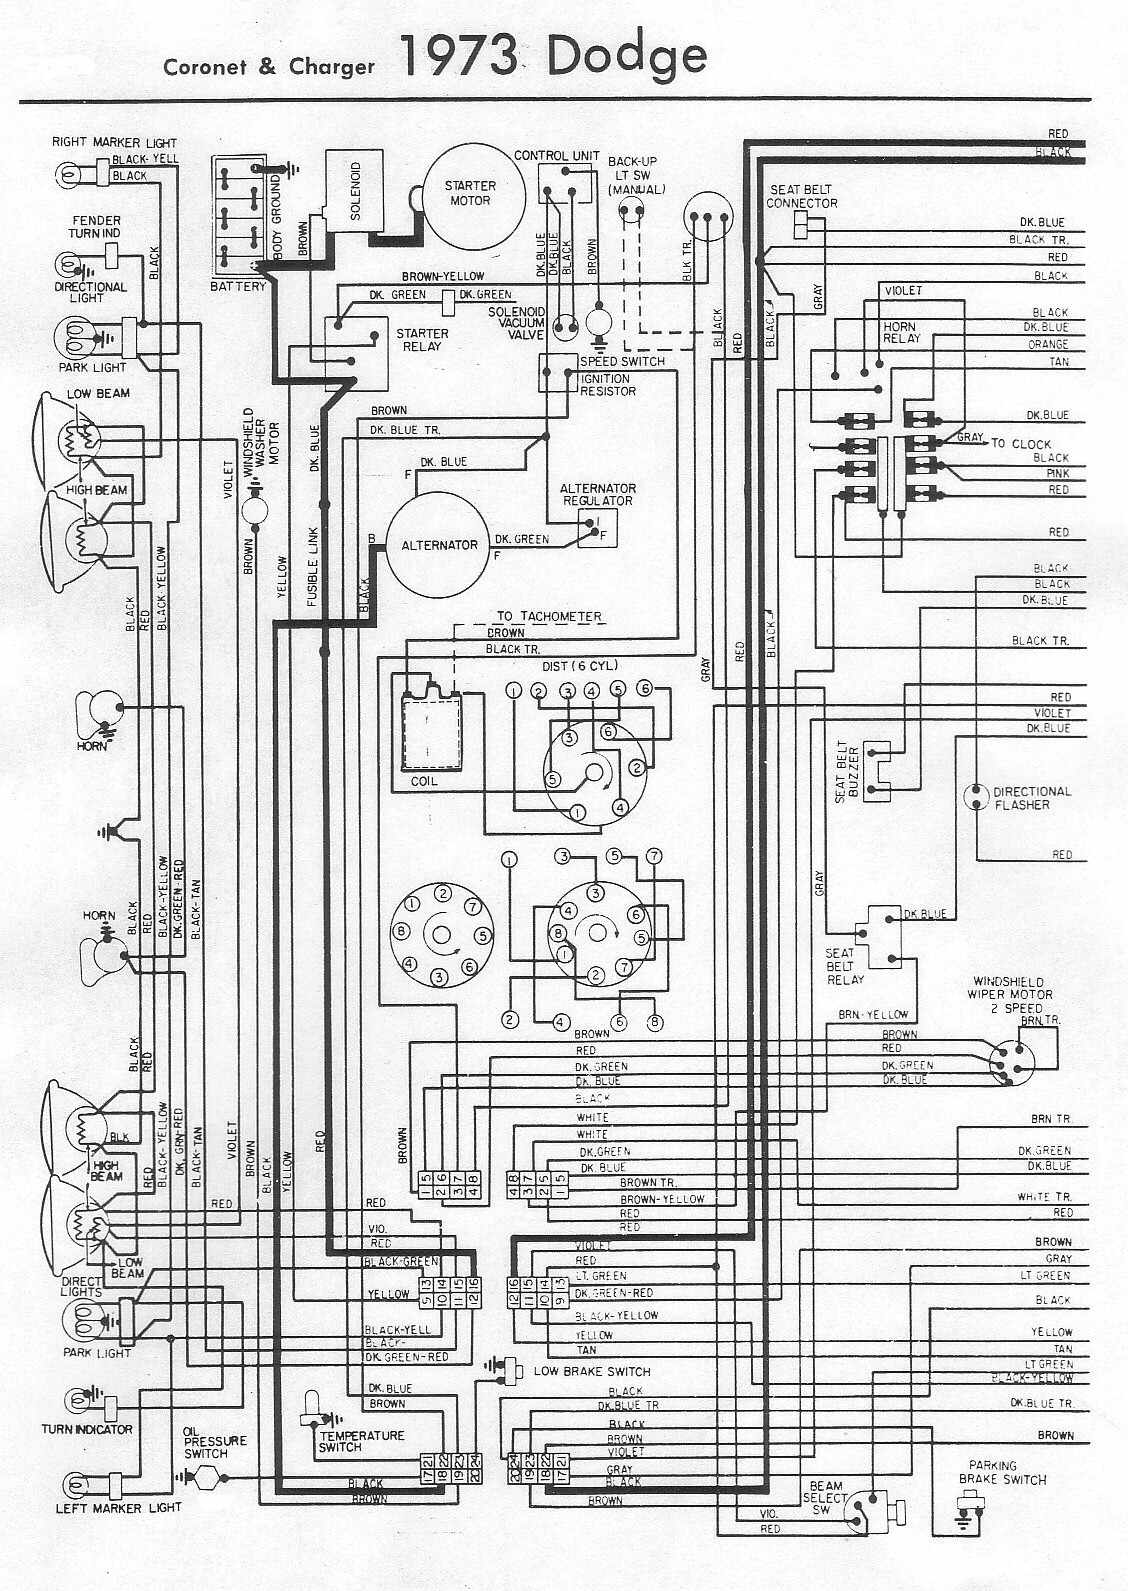 Dodge Car Manuals Wiring Diagrams Pdf Fault Codes Tractor Schematics Electrical Diagram Download